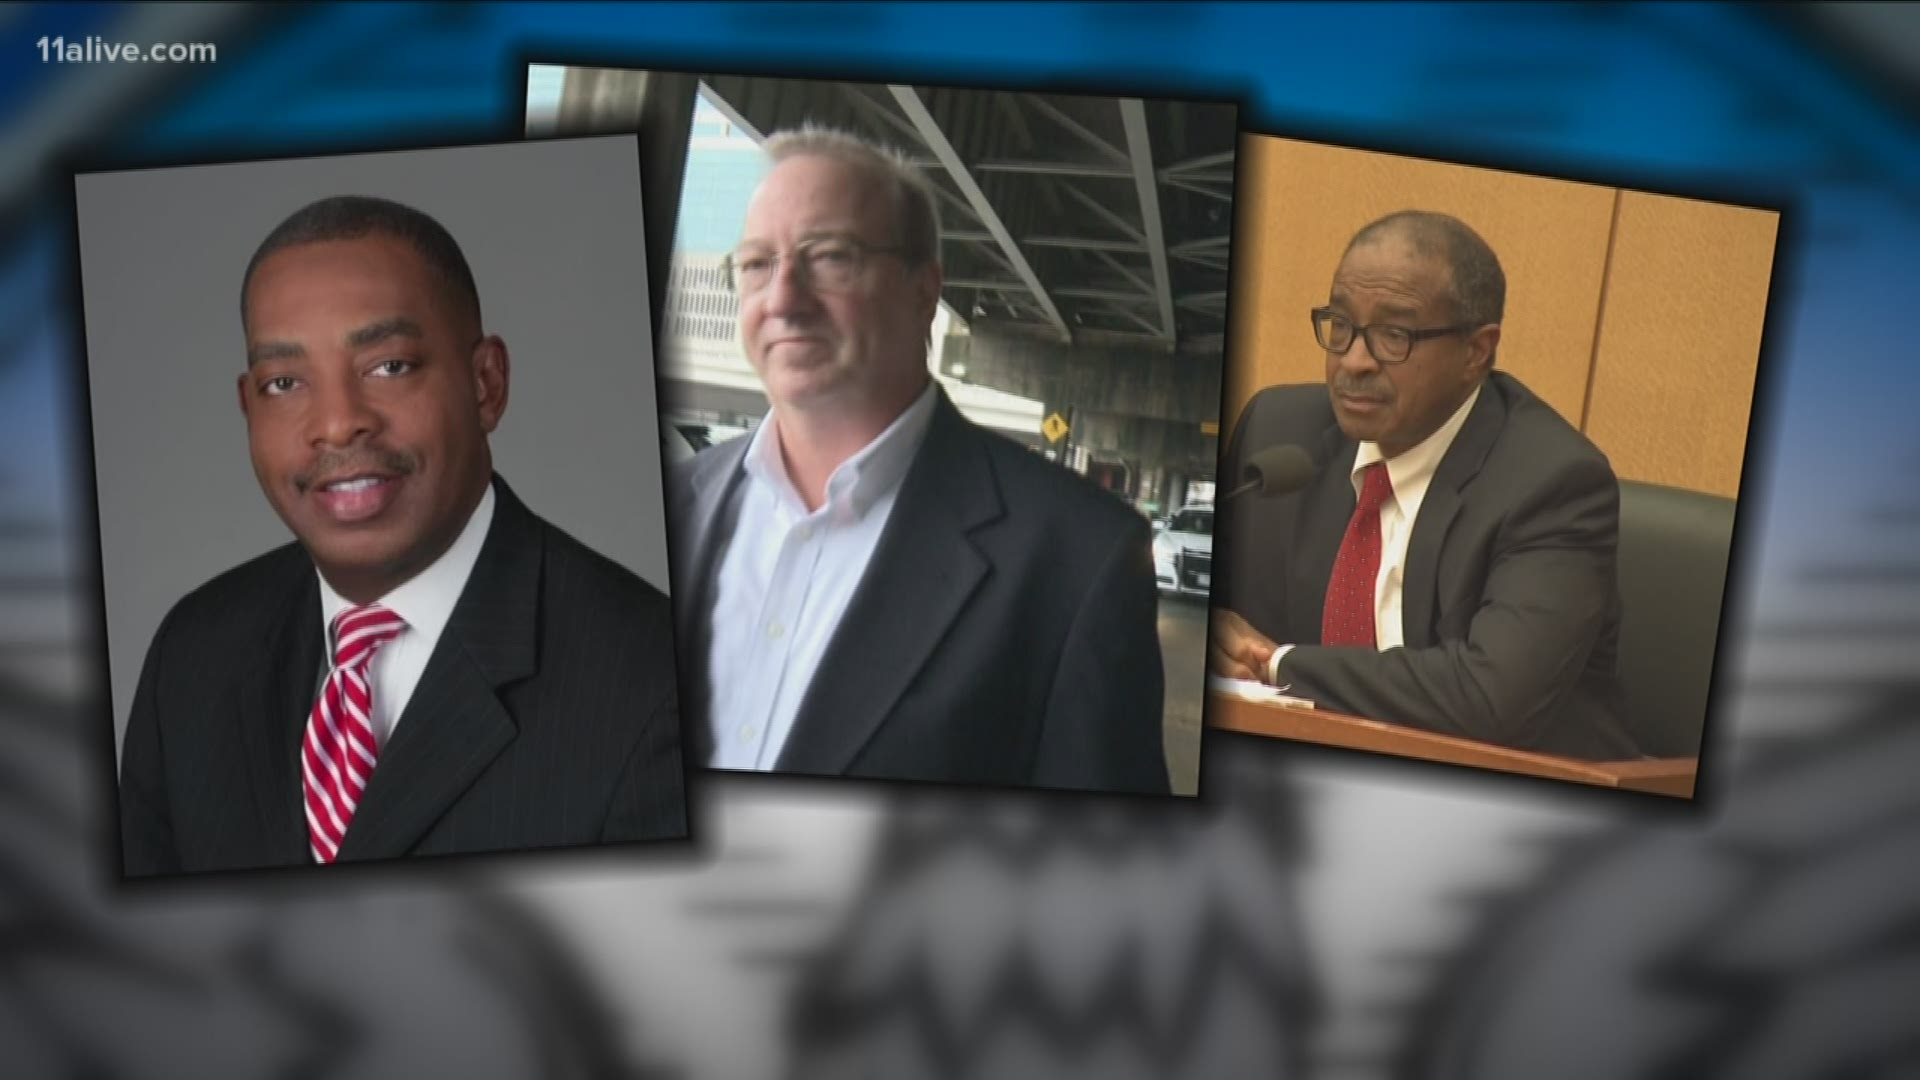 City hoping to soothe business owners' concerns after high-profile scandals